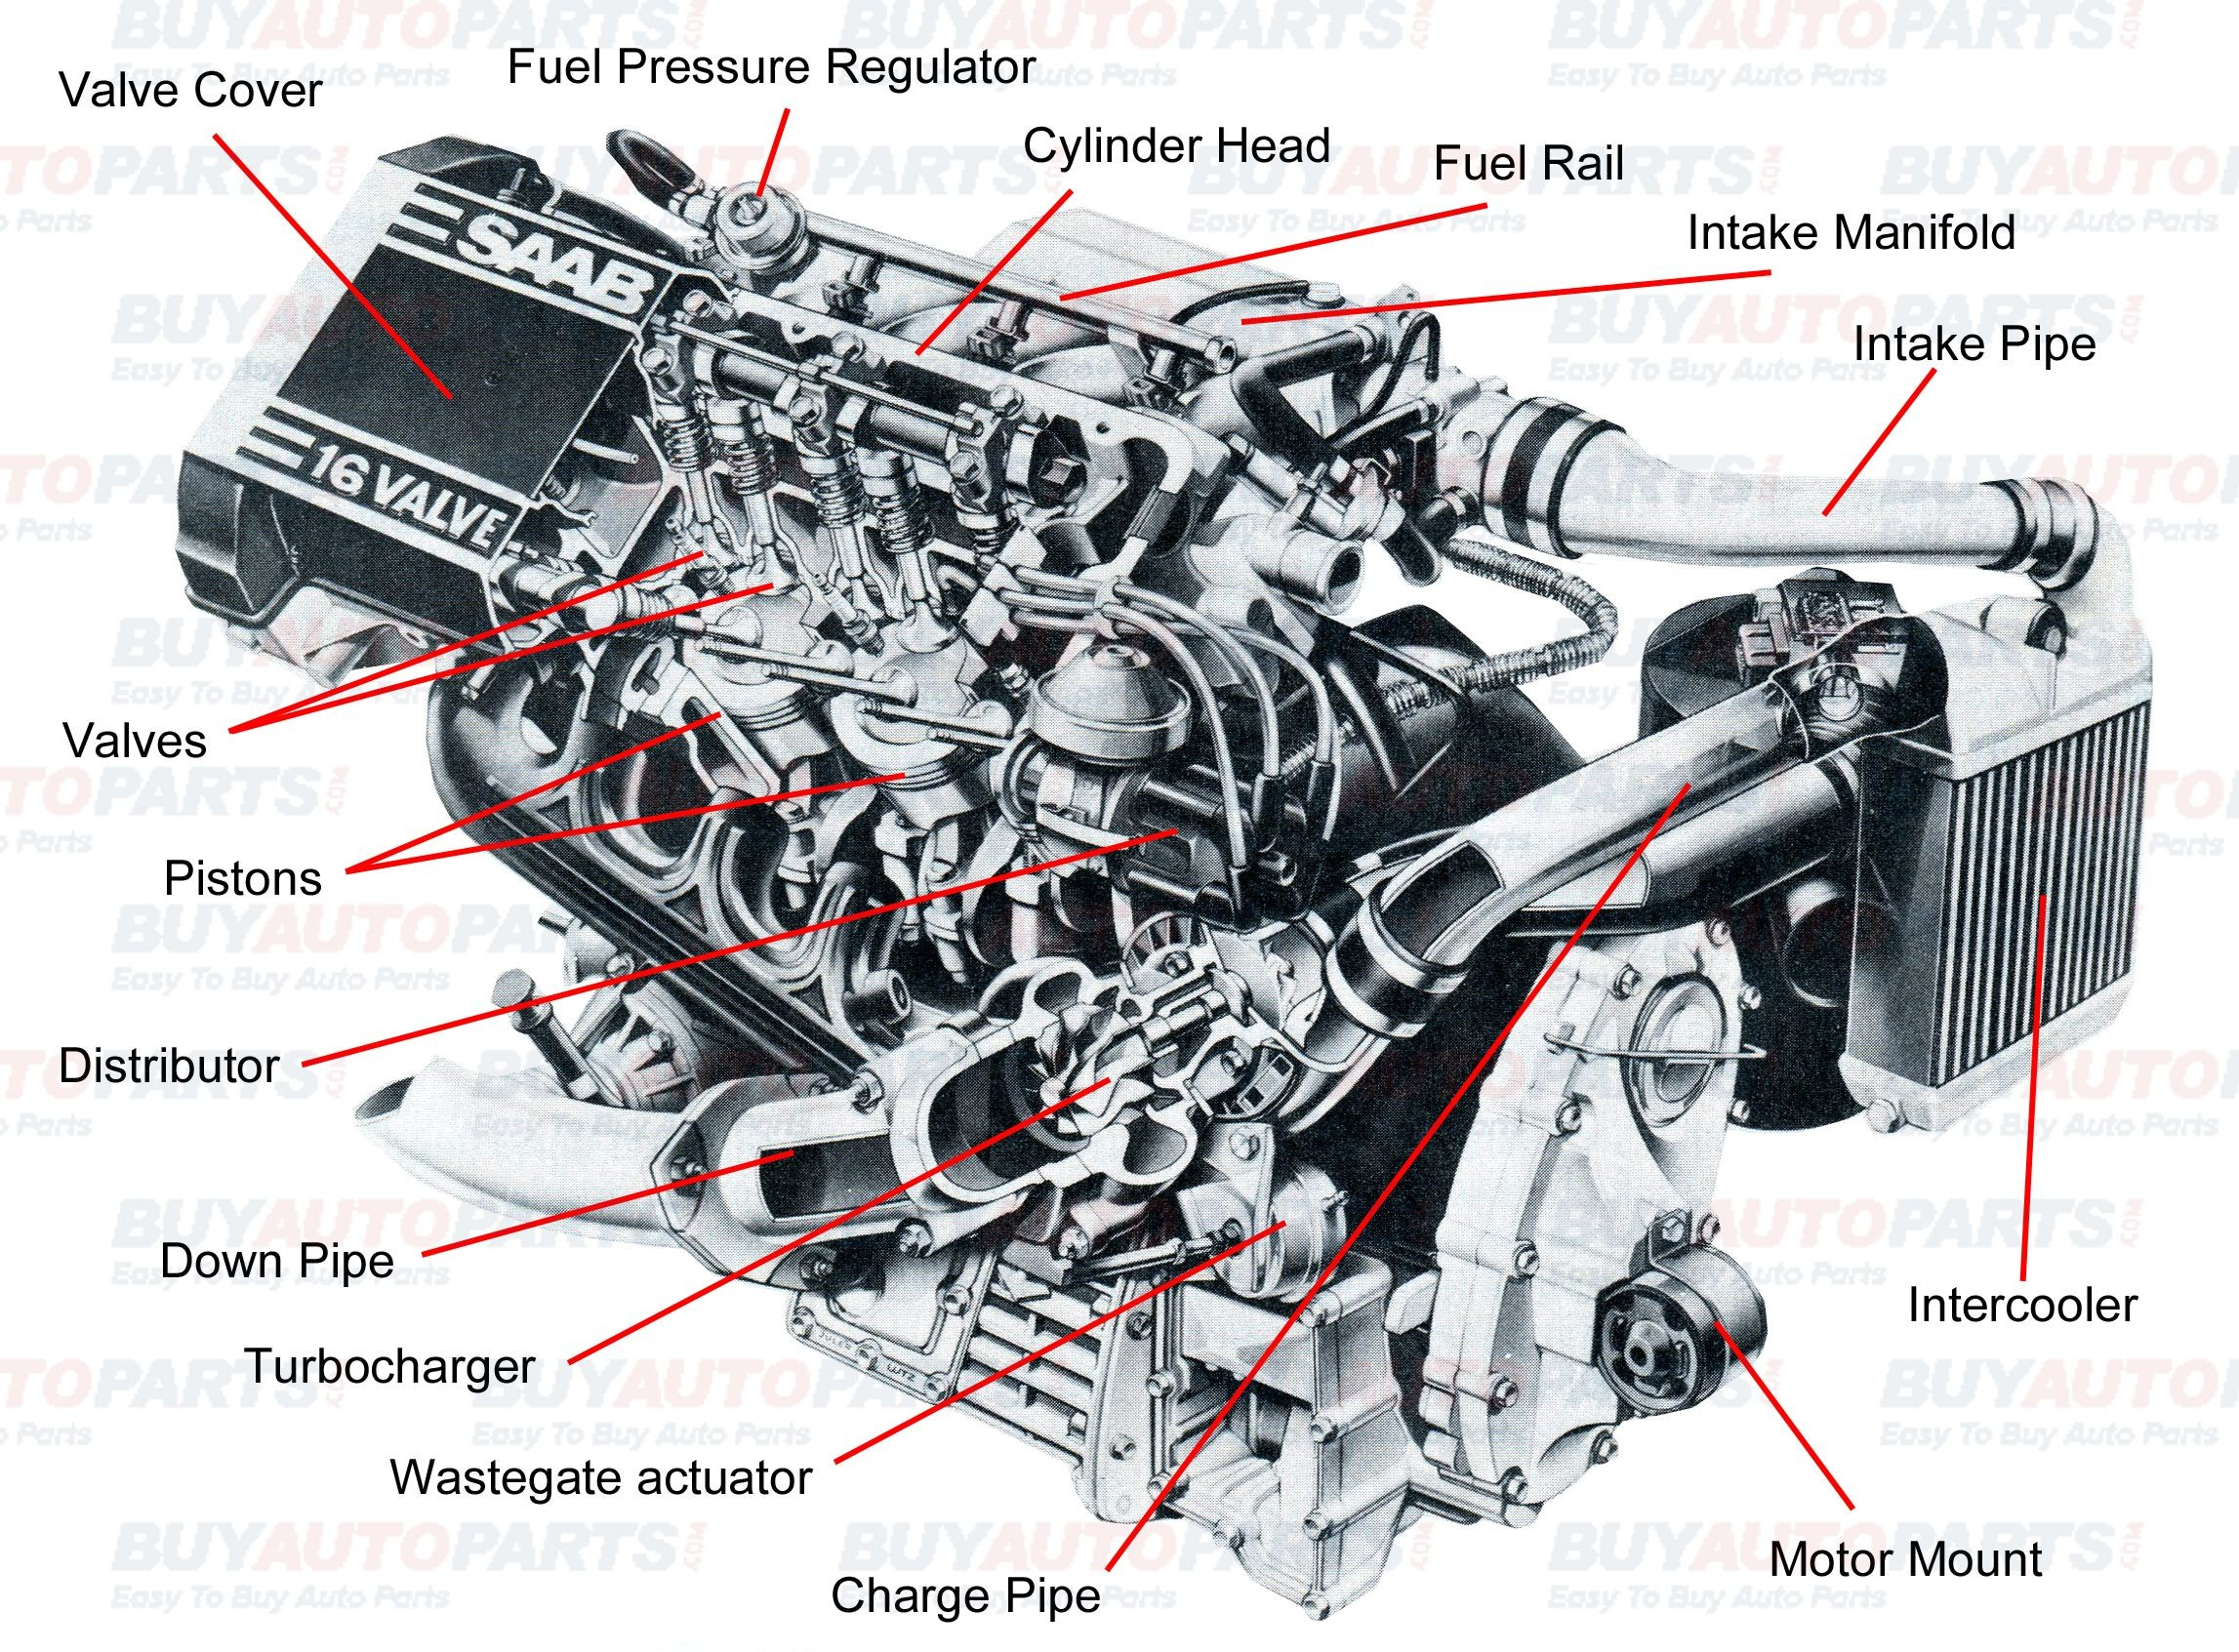 Car Engine Diagram for Kids Pin by Jimmiejanet Testellamwfz On What Does An Engine with Turbo Of Car Engine Diagram for Kids